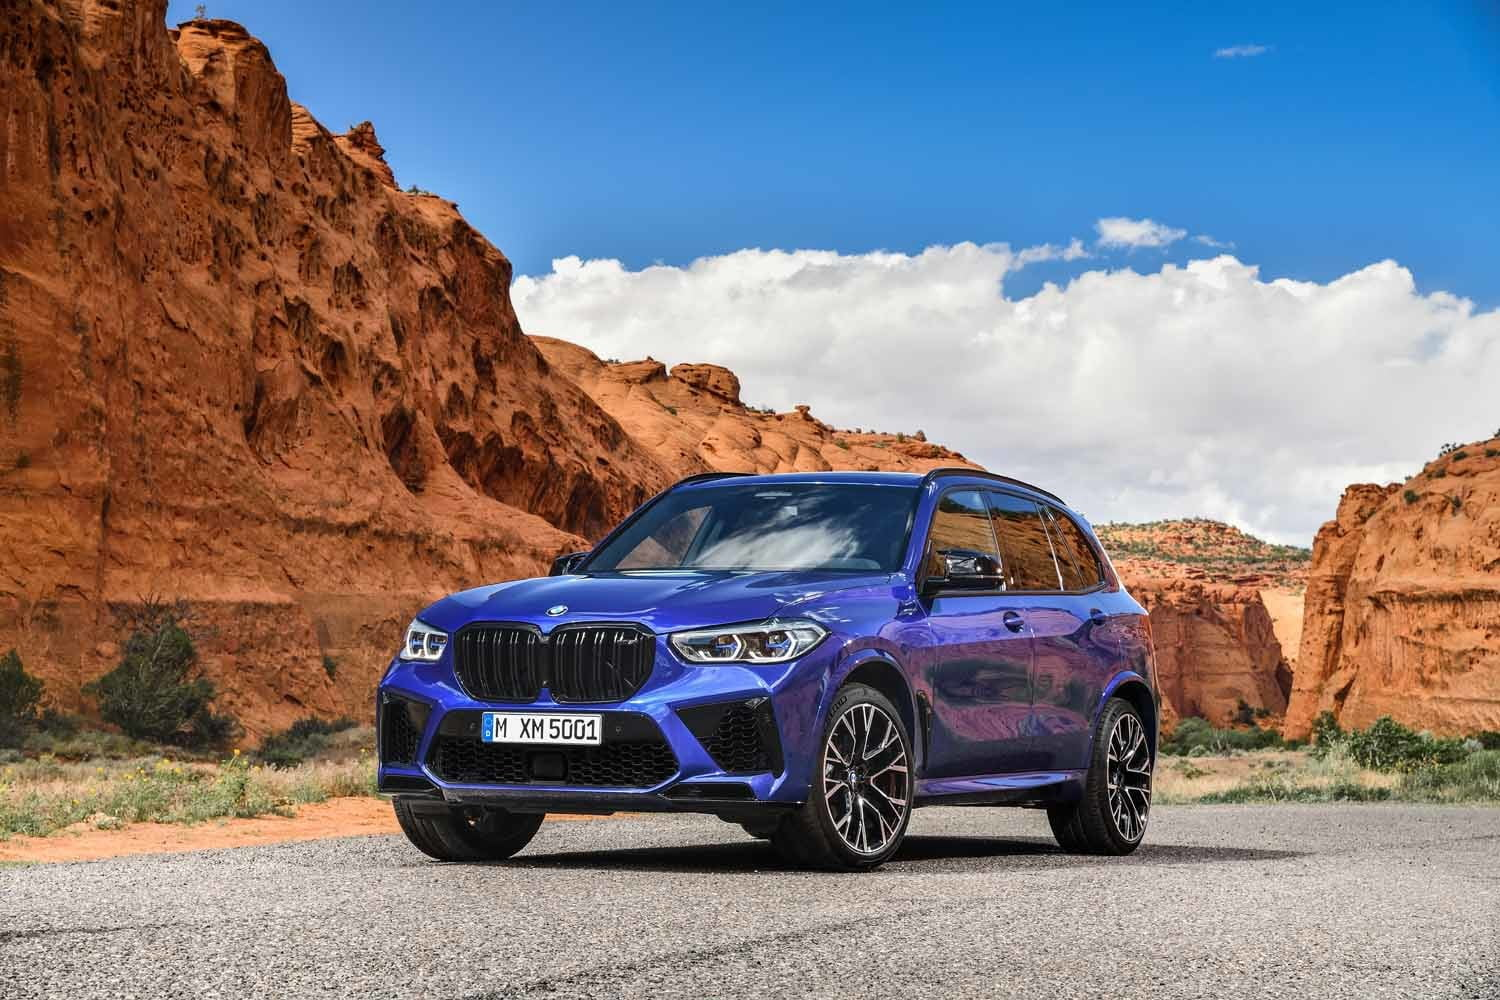 2020 bmw x5 m x6 get 600 horsepower v8 competition package x5m